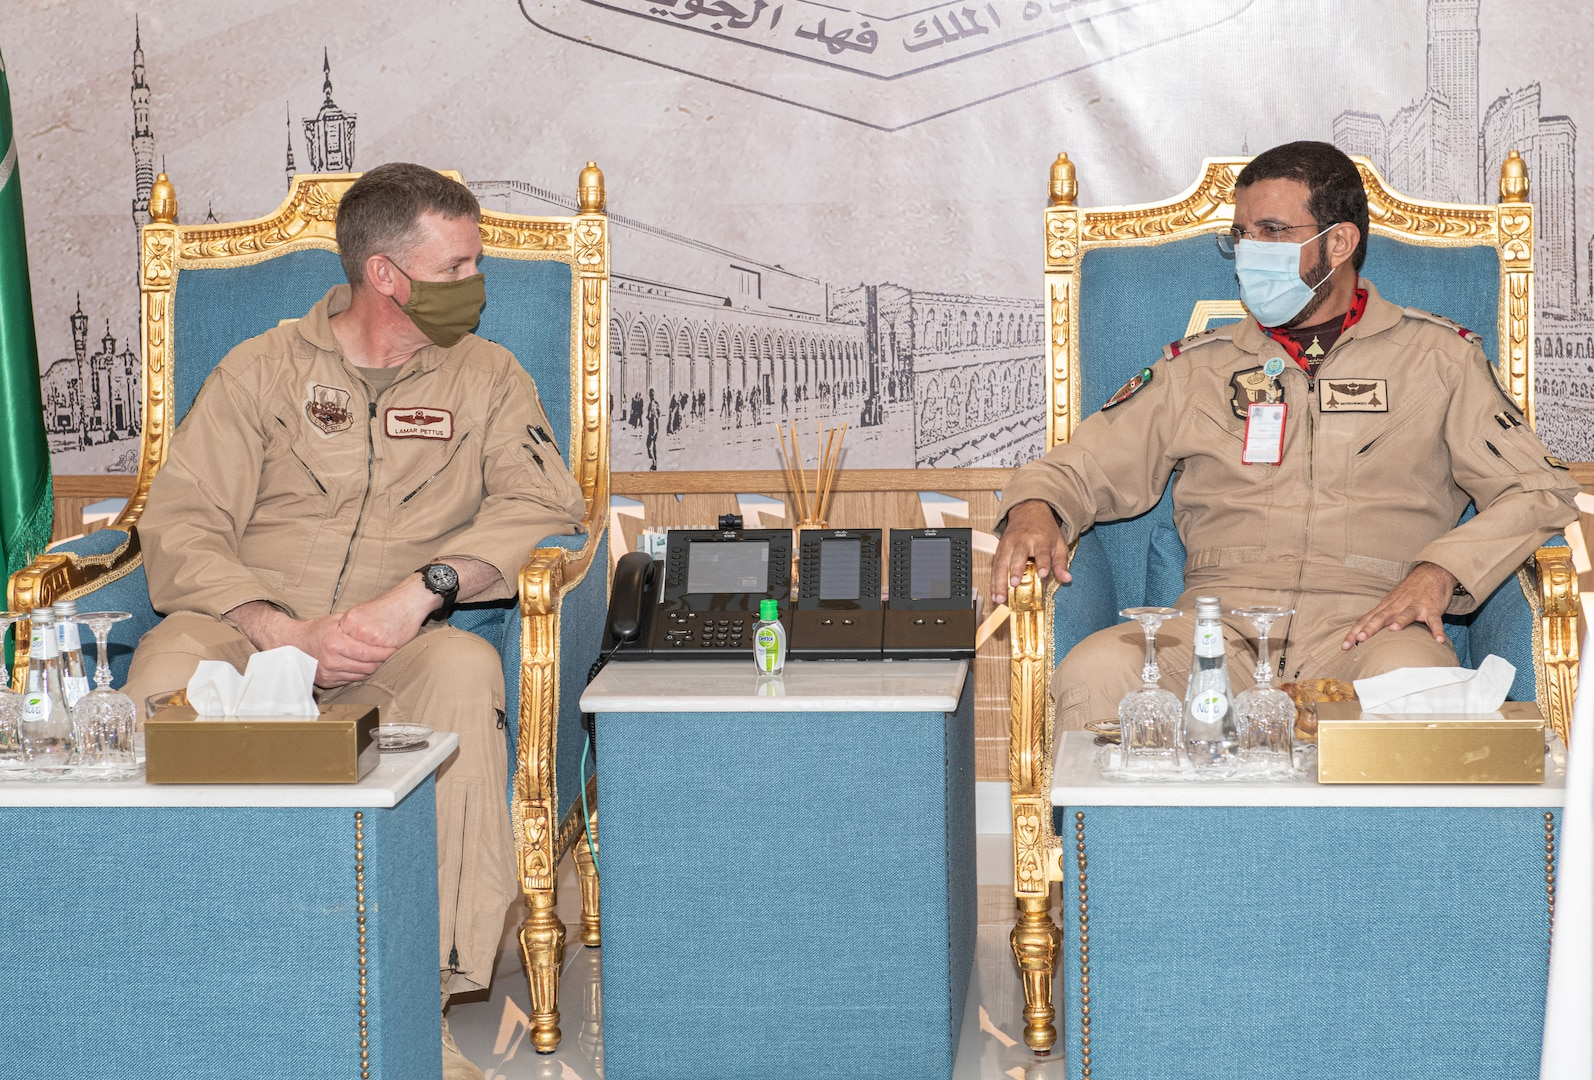 Brig. Gen. Evan Pettus, 378th Air Expeditionary Wing commander, speaks with the Royal Saudi Air Force King Fahad Air Base commander during an Agile Combat Employment capstone event Feb. 27, 2021, at an airbase in the Kingdom of Saudi Arabia.